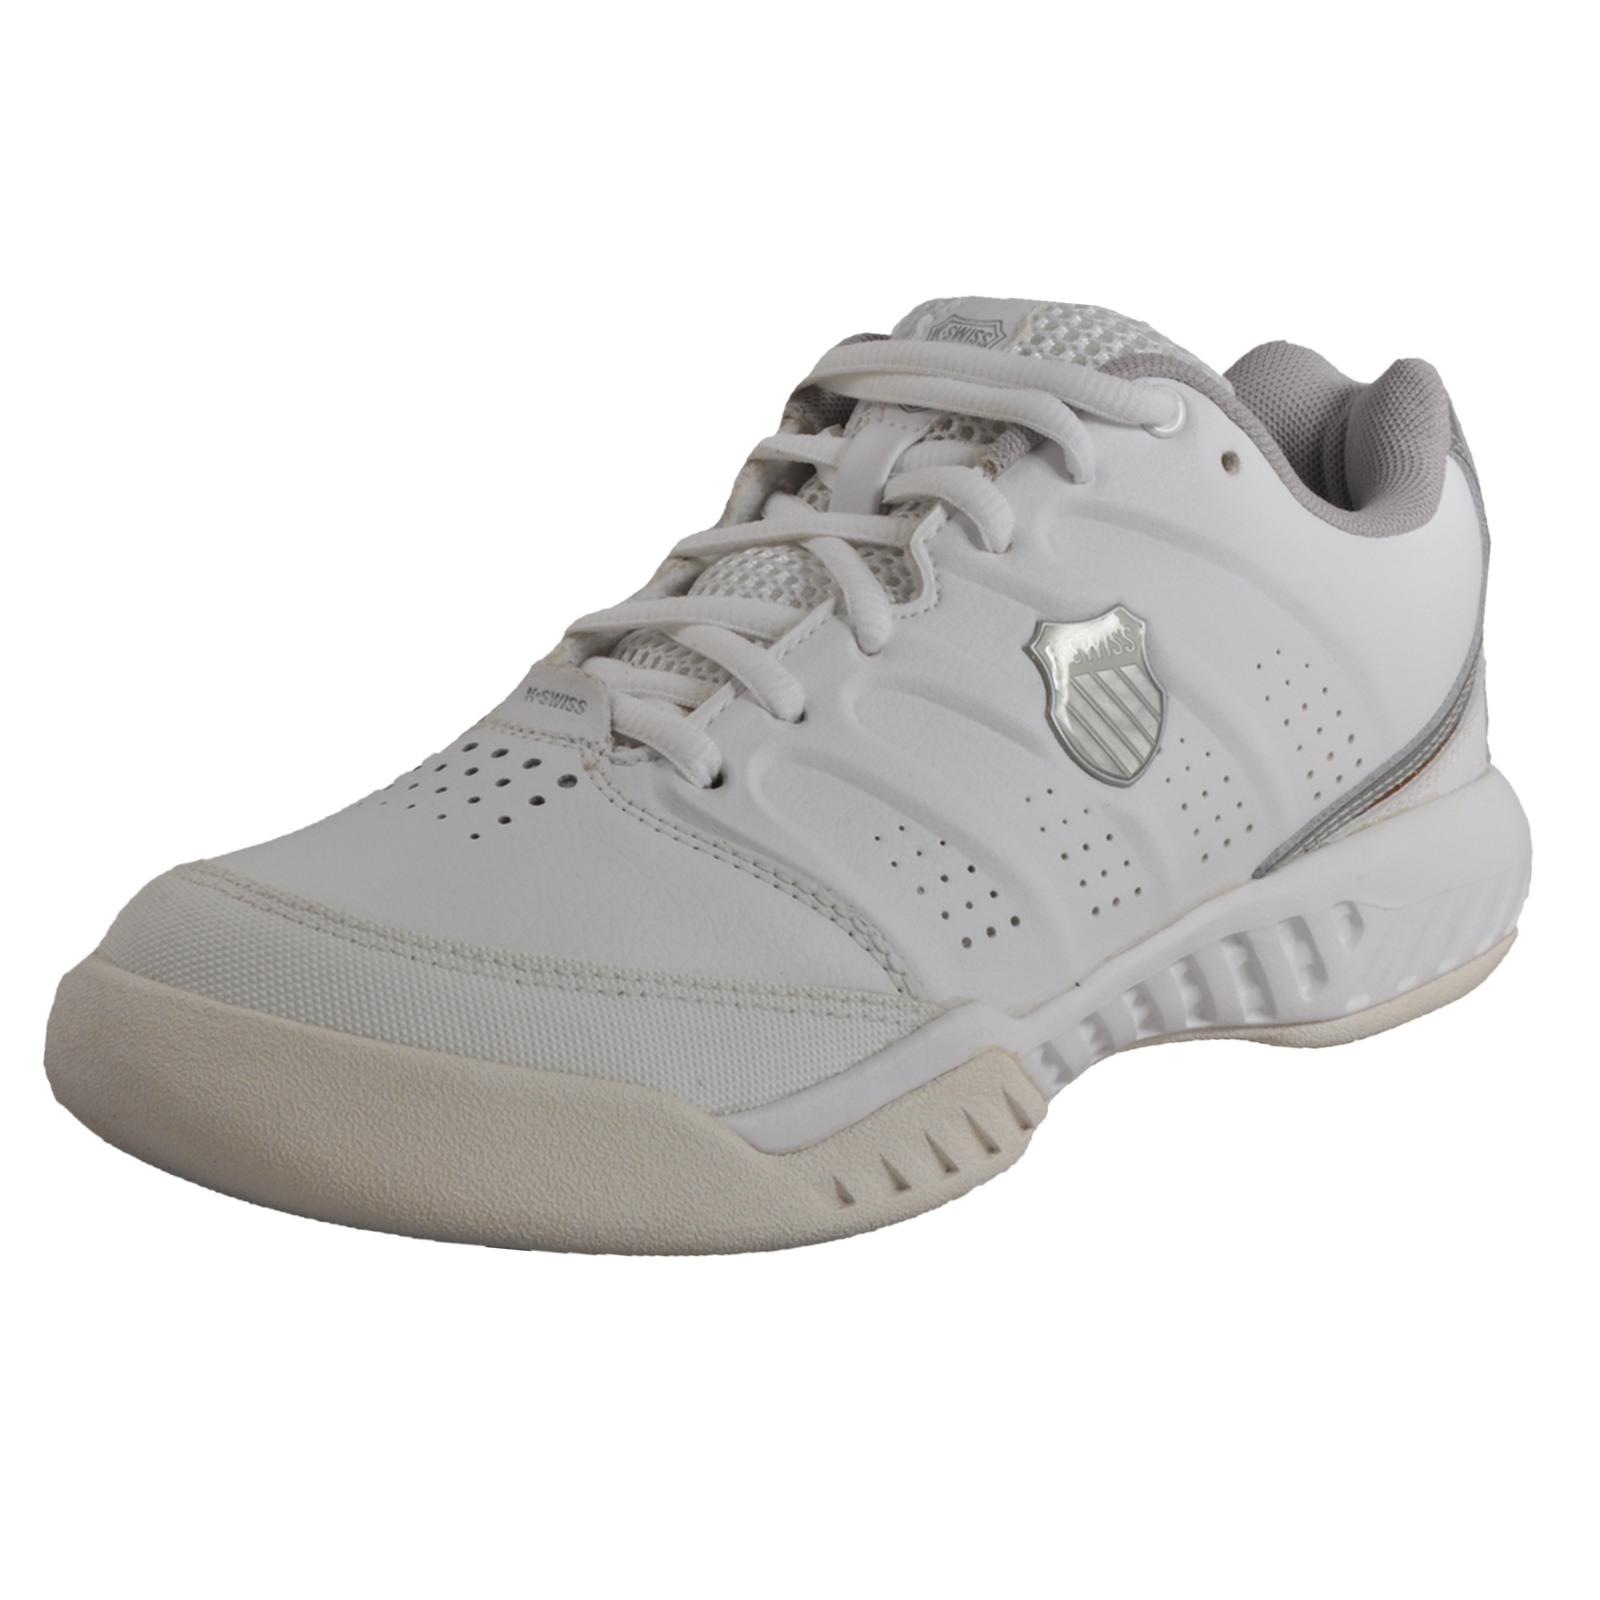 9303d8c84a2a Details about K Swiss Ultrascendor II Mens Court Fitness Gym Leather  Trainers White UK 9 Only